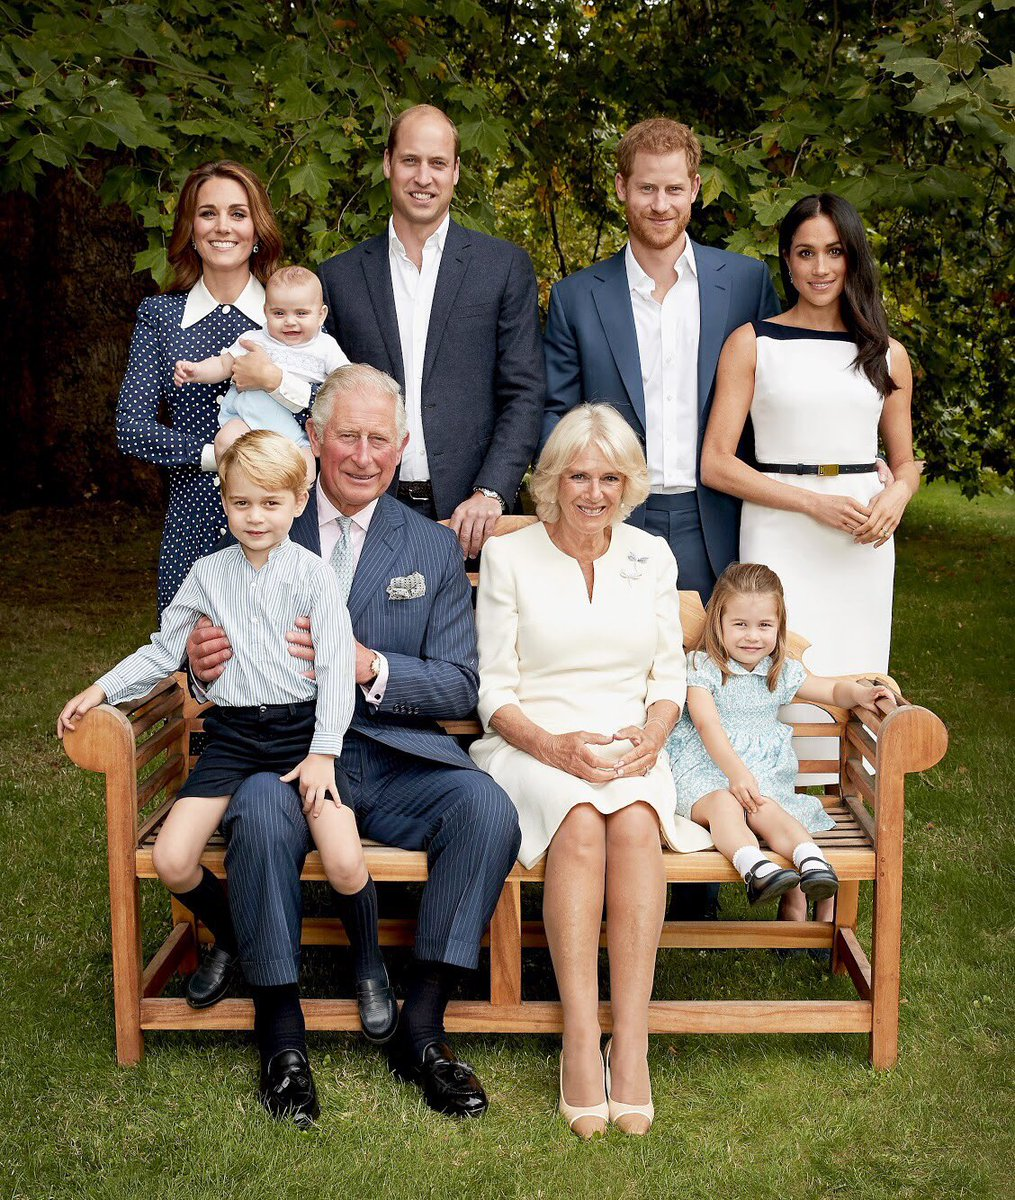 Two new photographs of The Prince of Wales and his family have been released to celebrate HRH's 70th birthday.  The photos were taken by Chris Jackson in the garden of Clarence House.